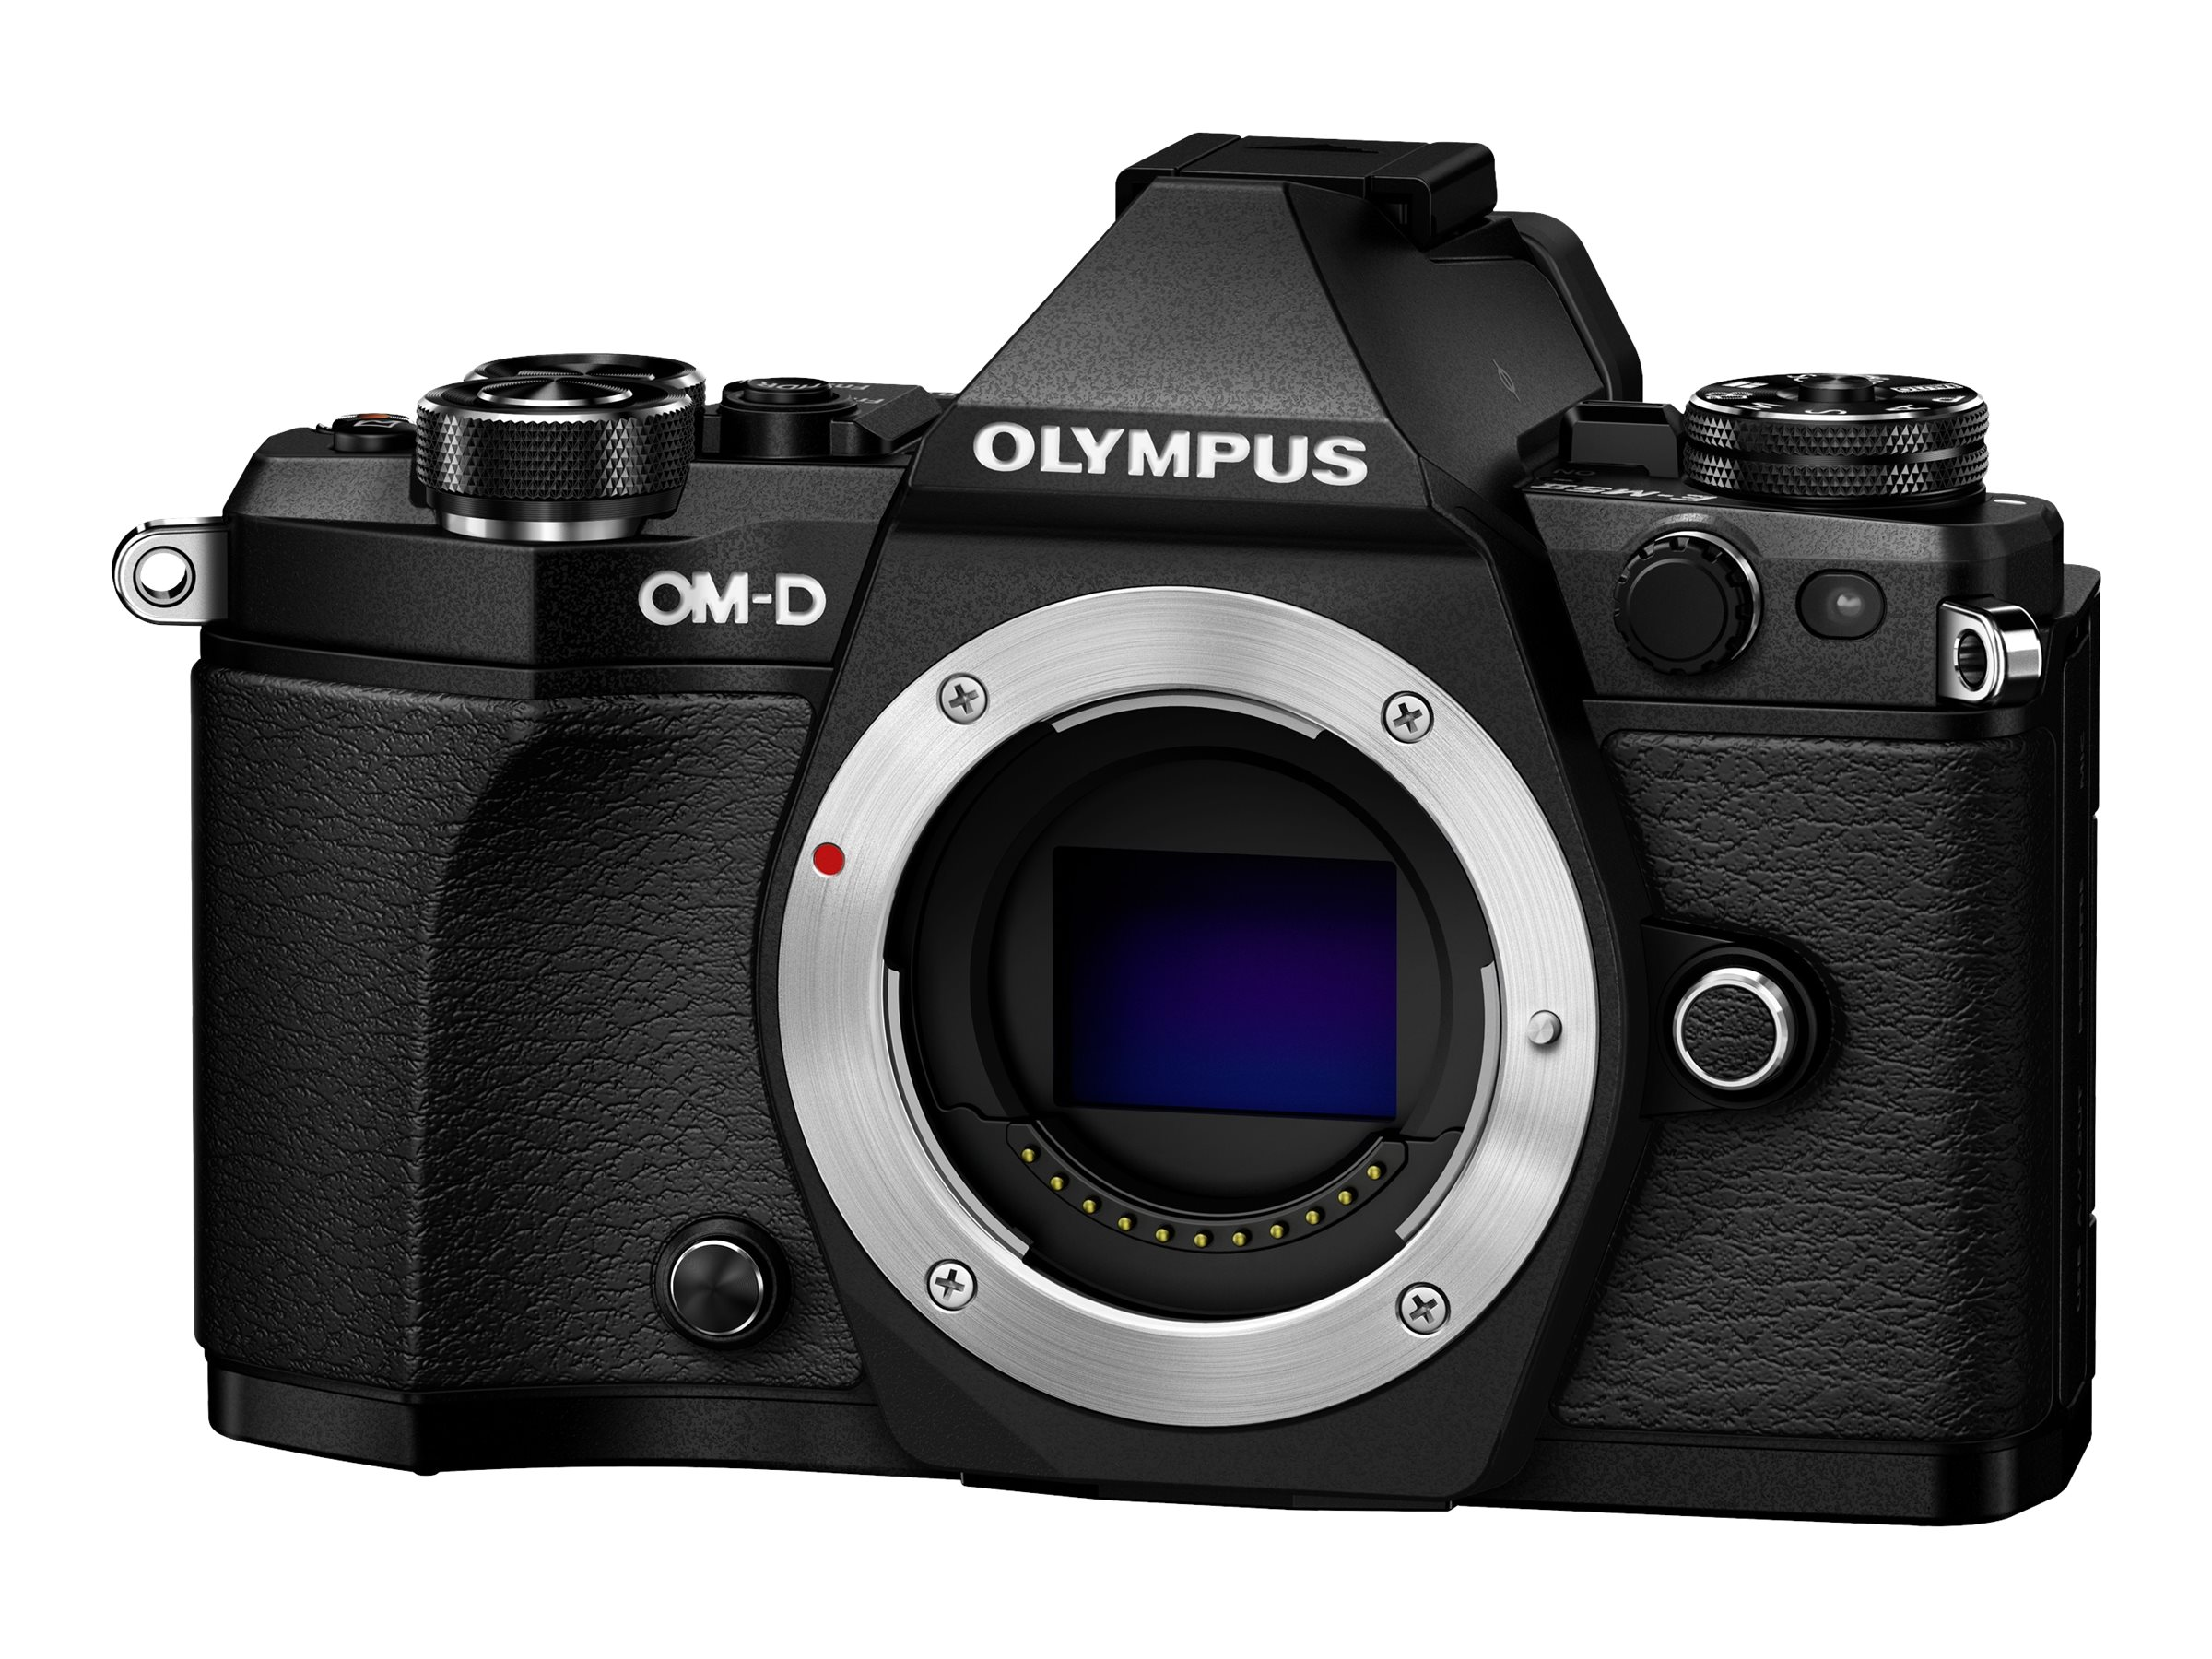 Olympus OM-D E-M5 Mark II Mirrorless Micro Four Thirds Digital, Black (Body Only)